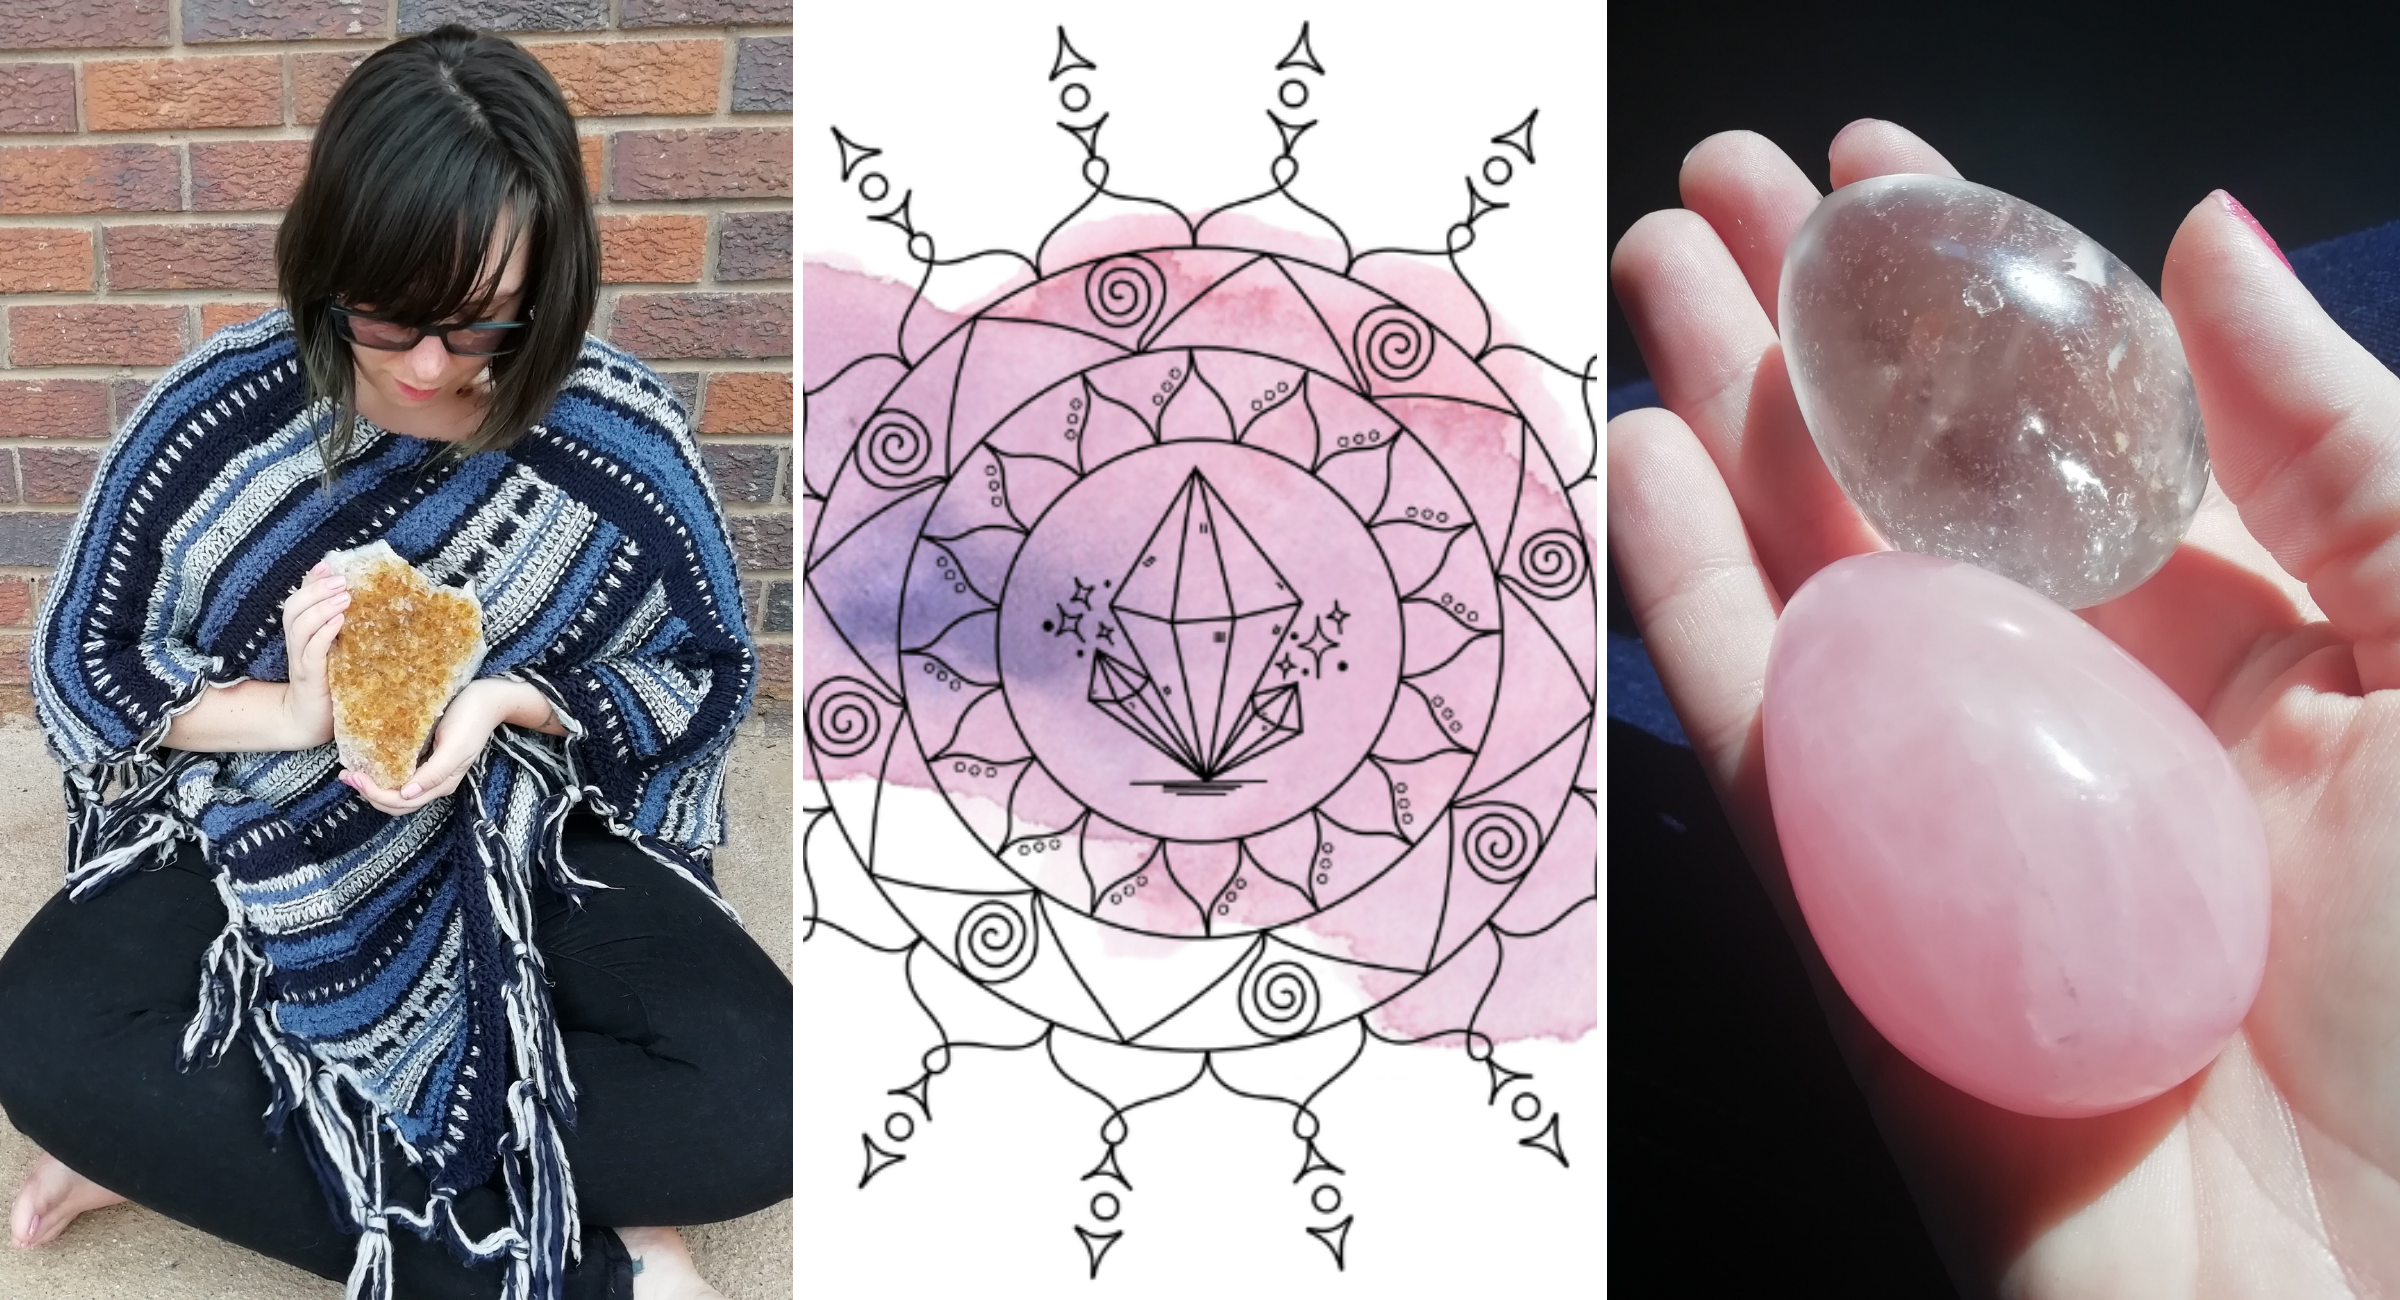 SGCrystalHealing - Certified Crystal Healer and Oracle Mandala Creator